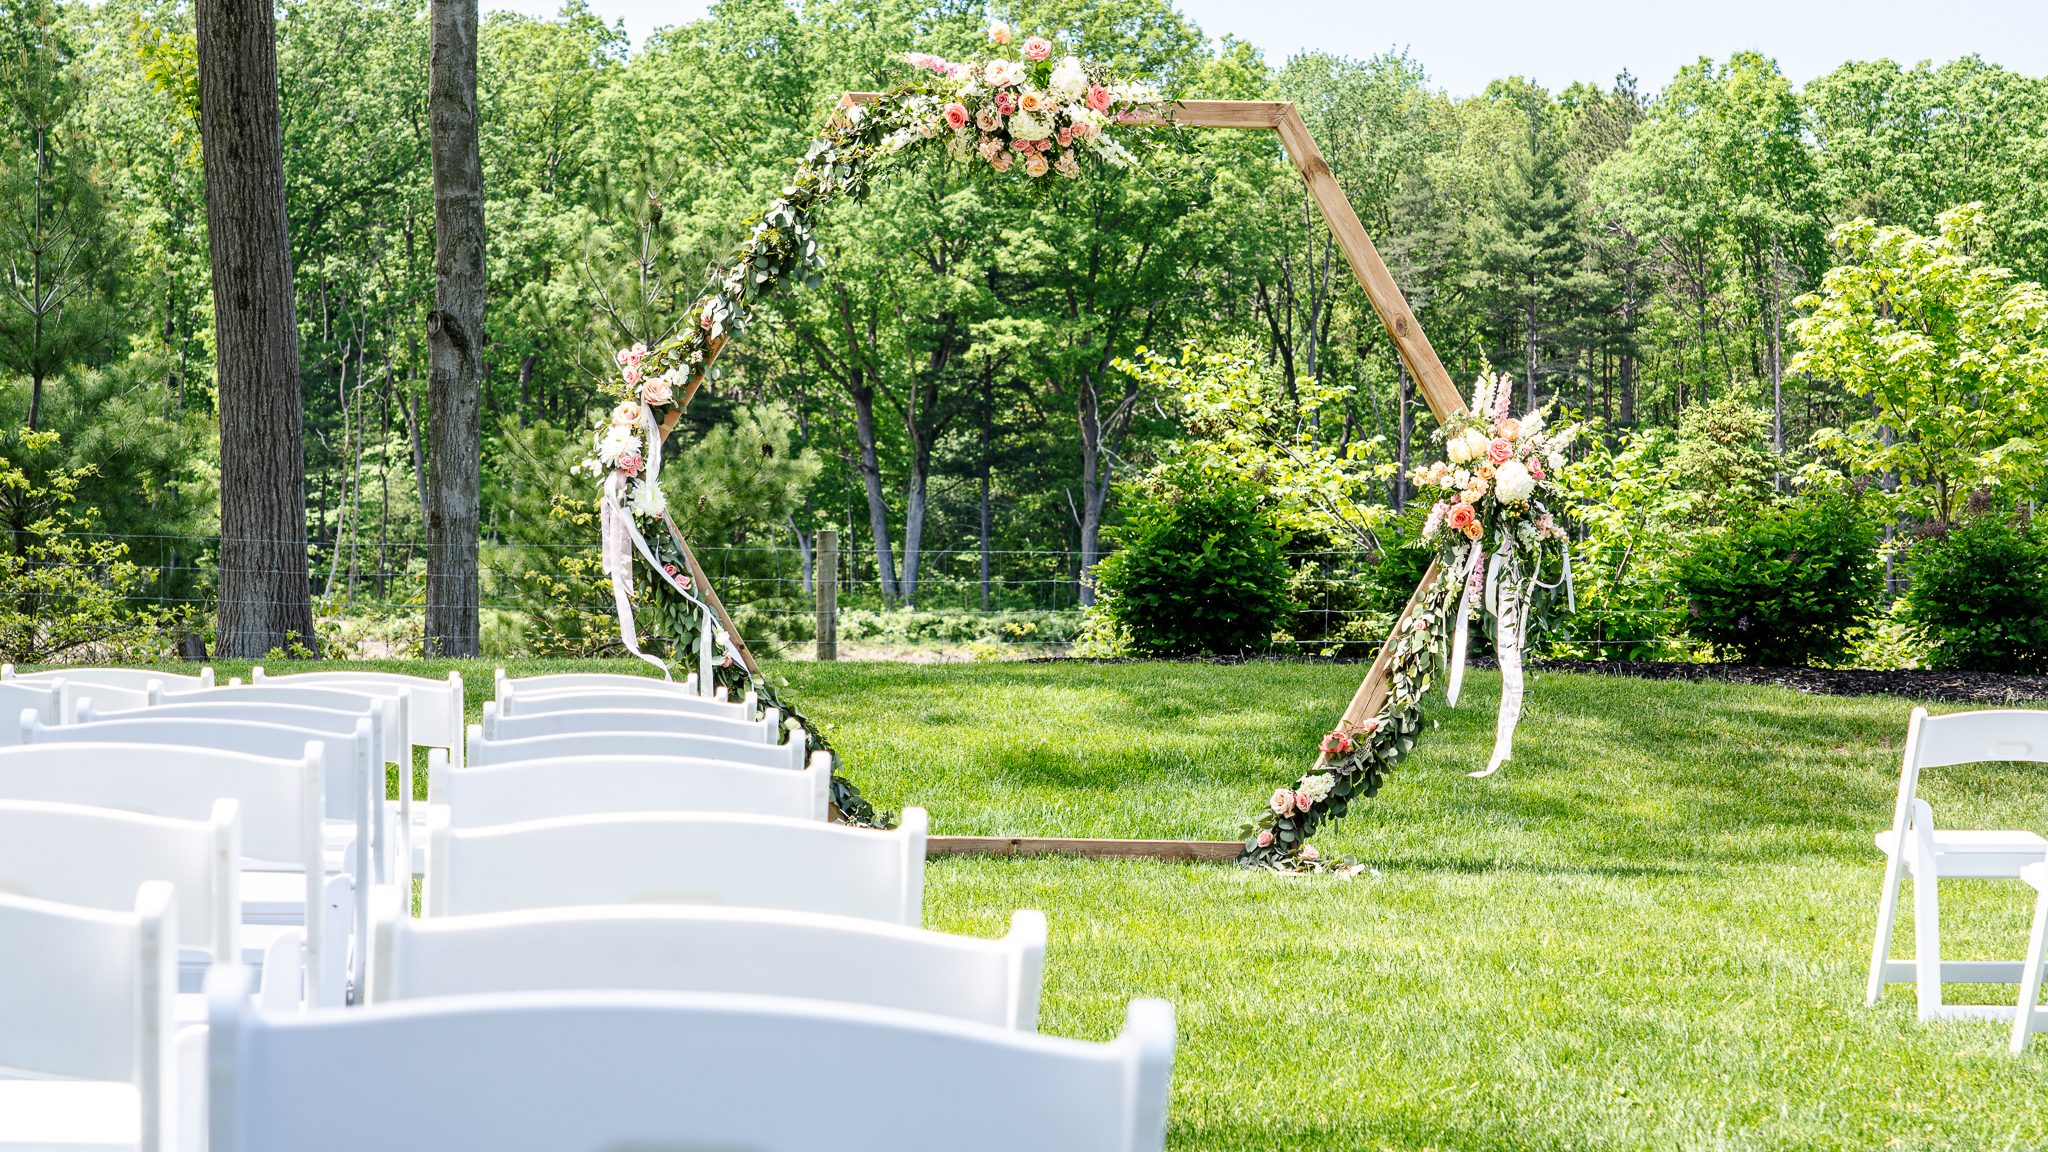 A wooden arche covered in flowers and sitting at the front of a arrangement of chairs.